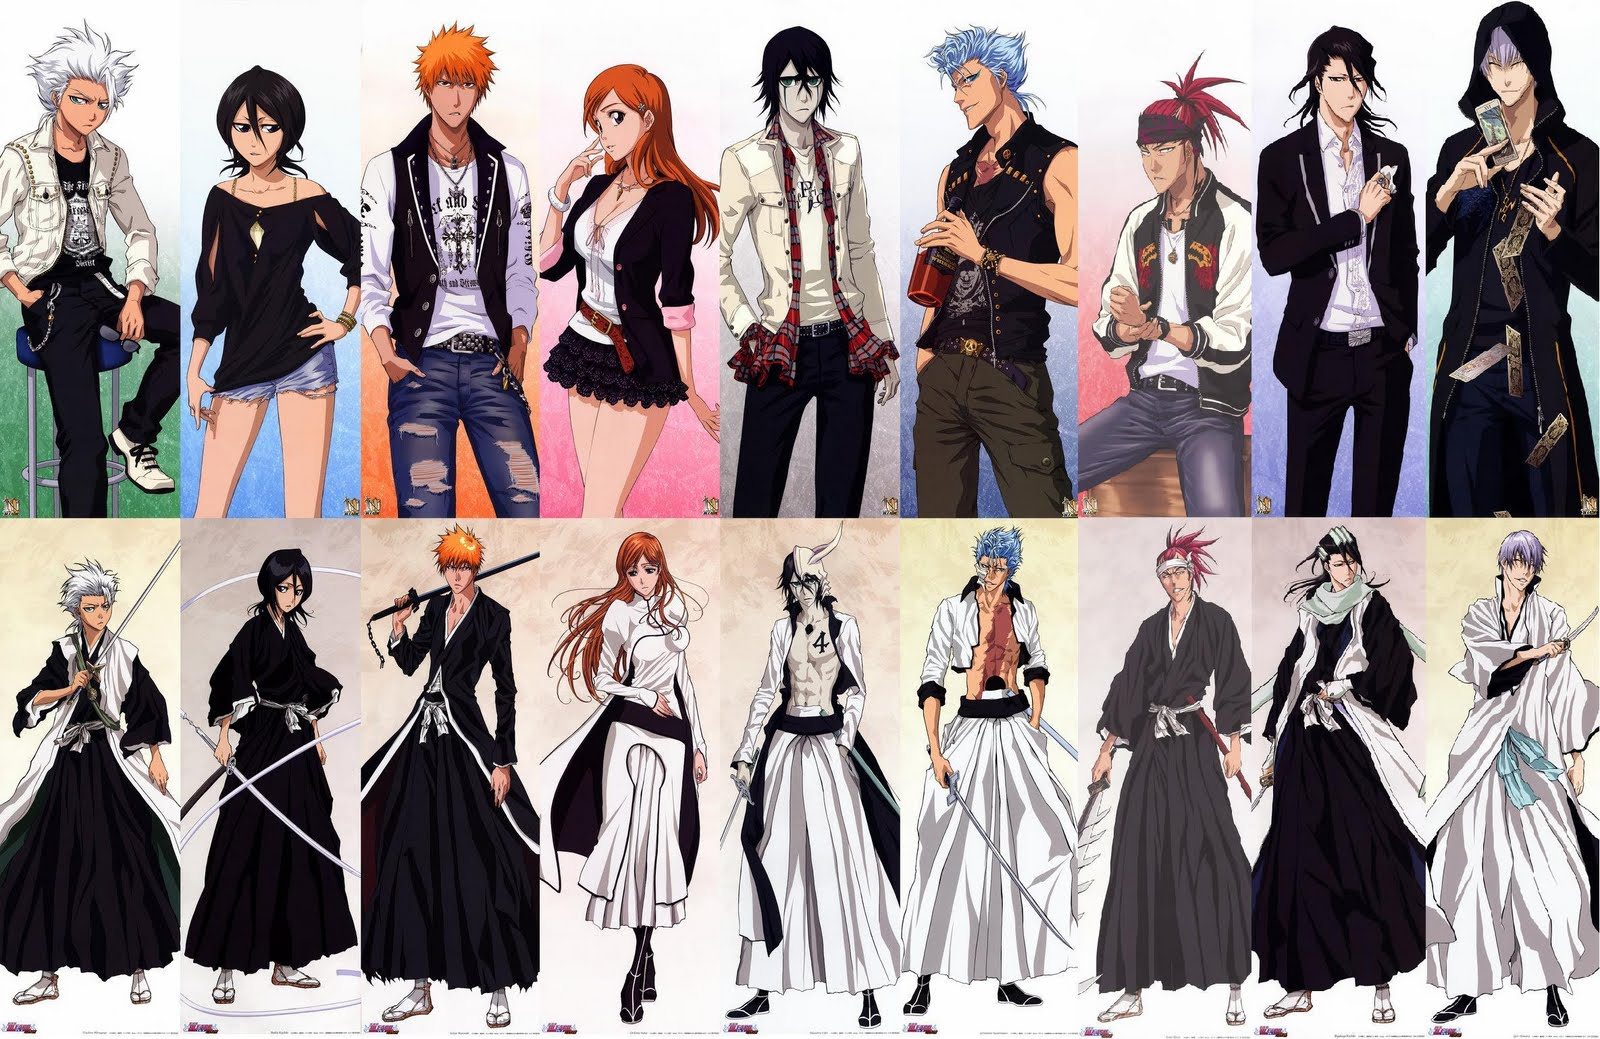 Bleach Anime images Bleach HD wallpaper and background photos ...